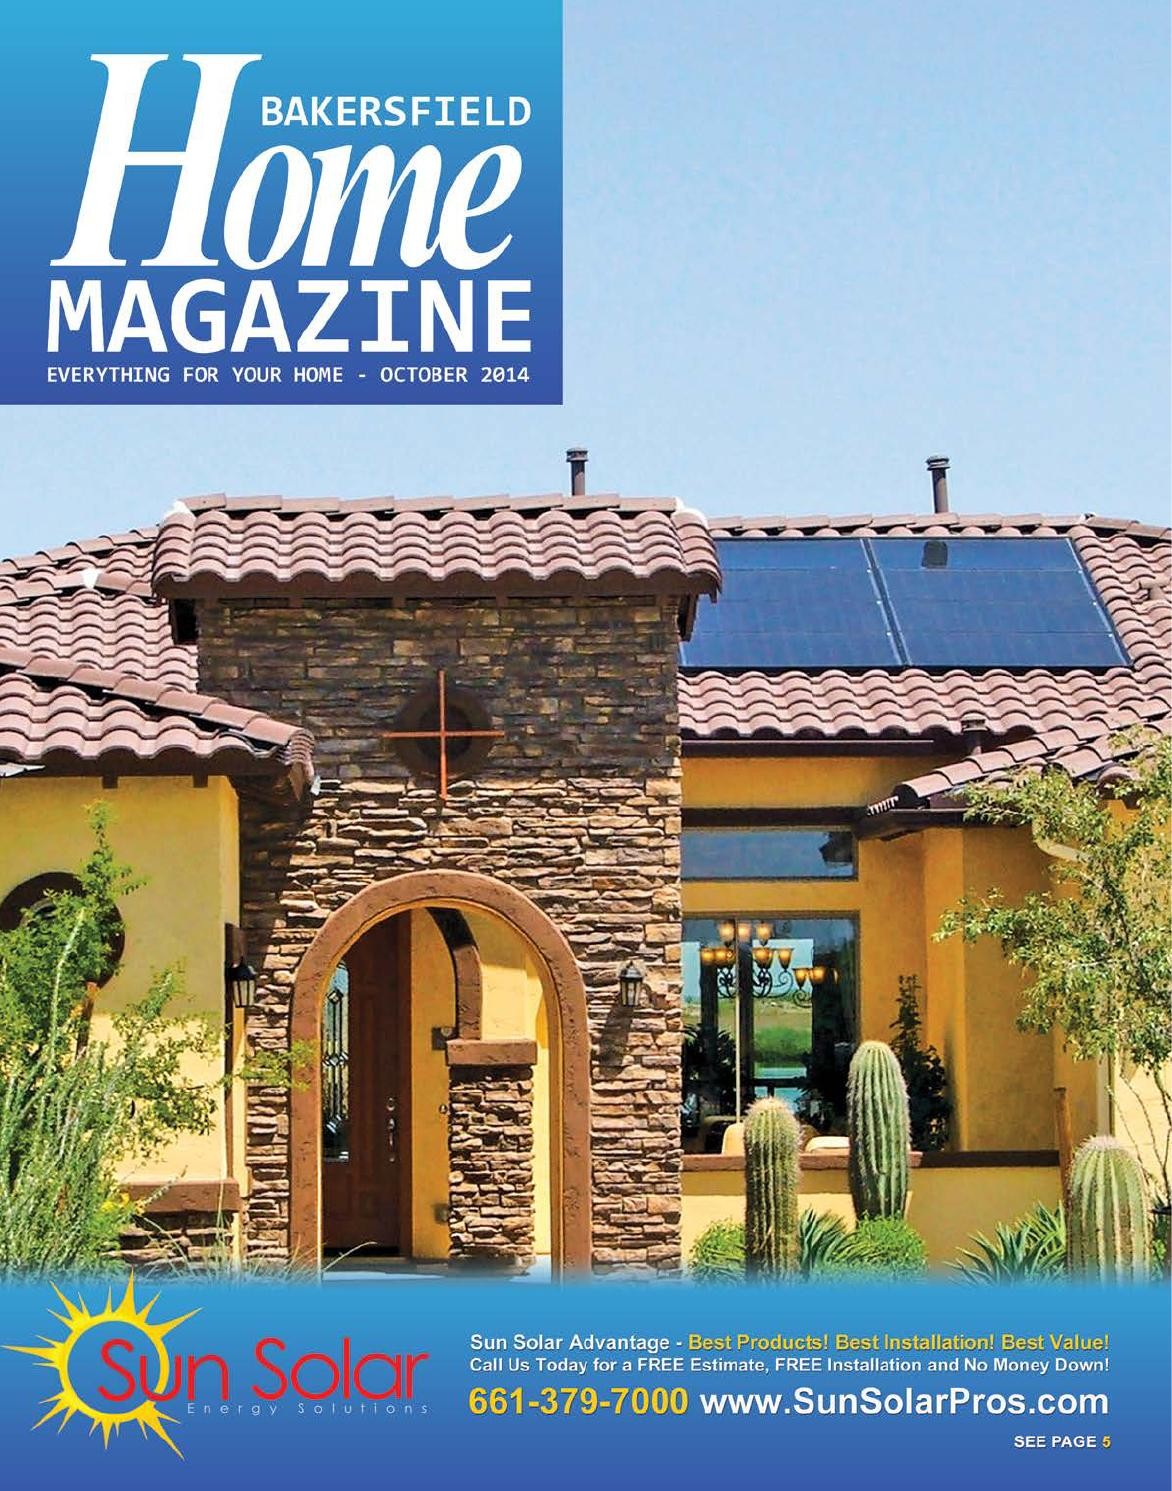 Bakersfield home mag october 2014 by bakersfield for Bakersfield home magazine